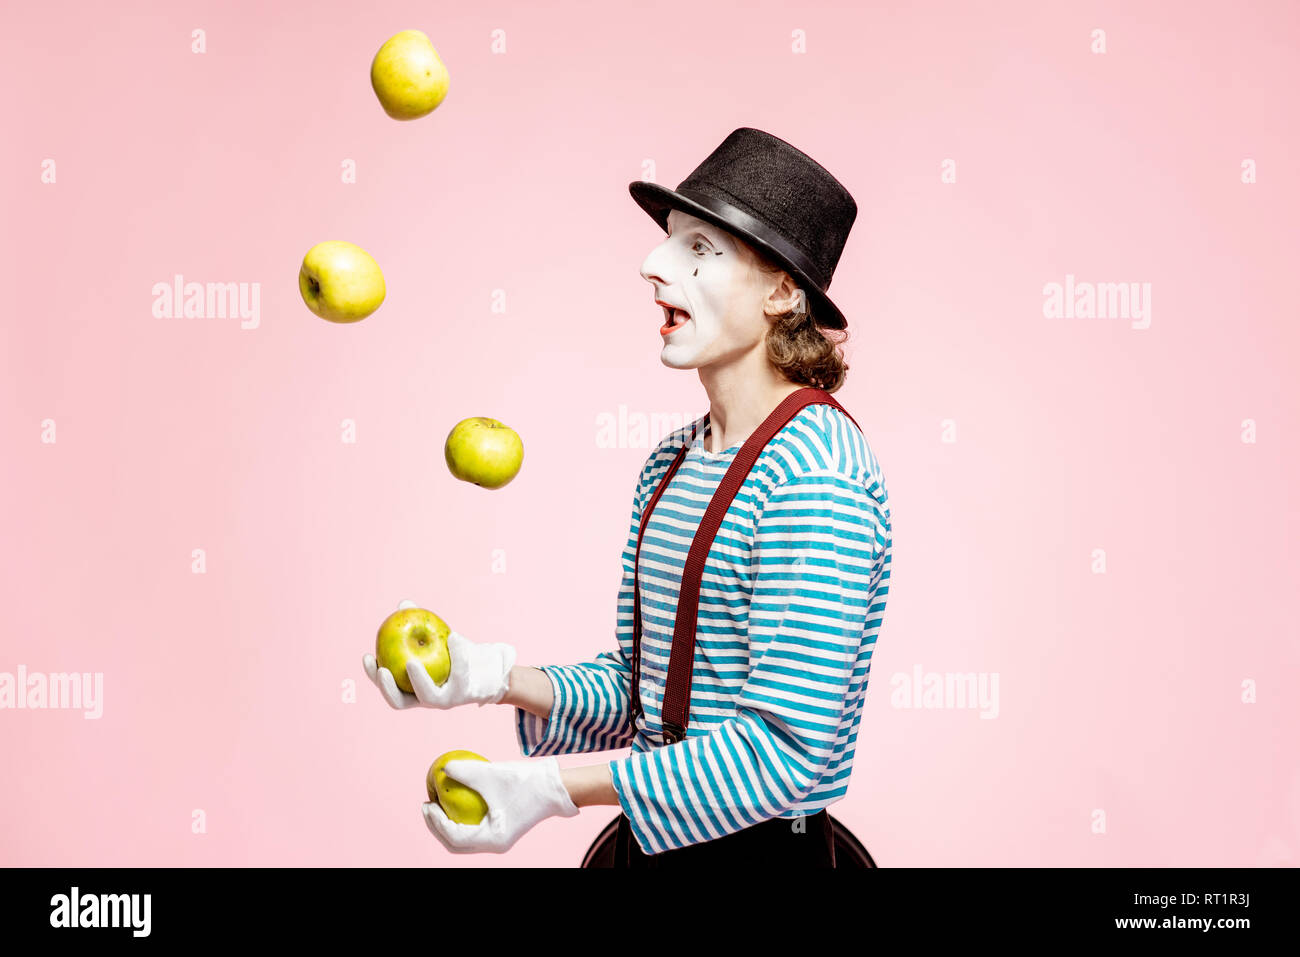 Pantomime with white facial makeup juggling with apples on the pink background in the studio - Stock Image